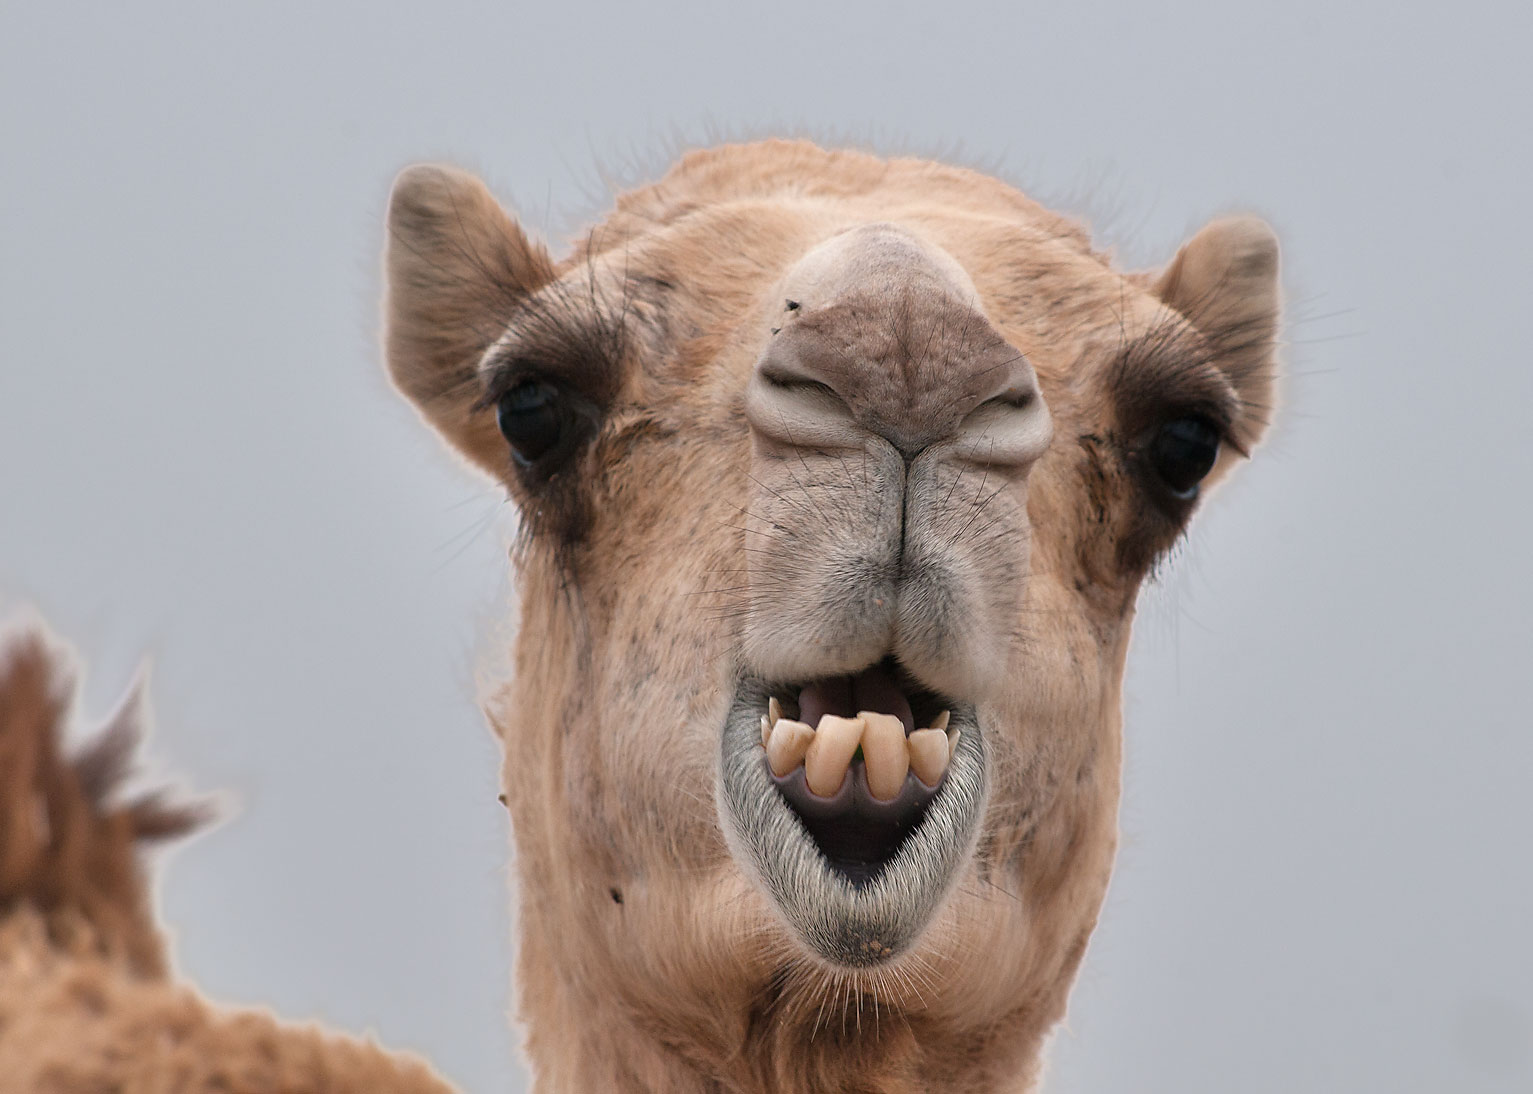 Camel showing its lower teeth in Camel Market, Wholesale Markets area. Doha, Qatar